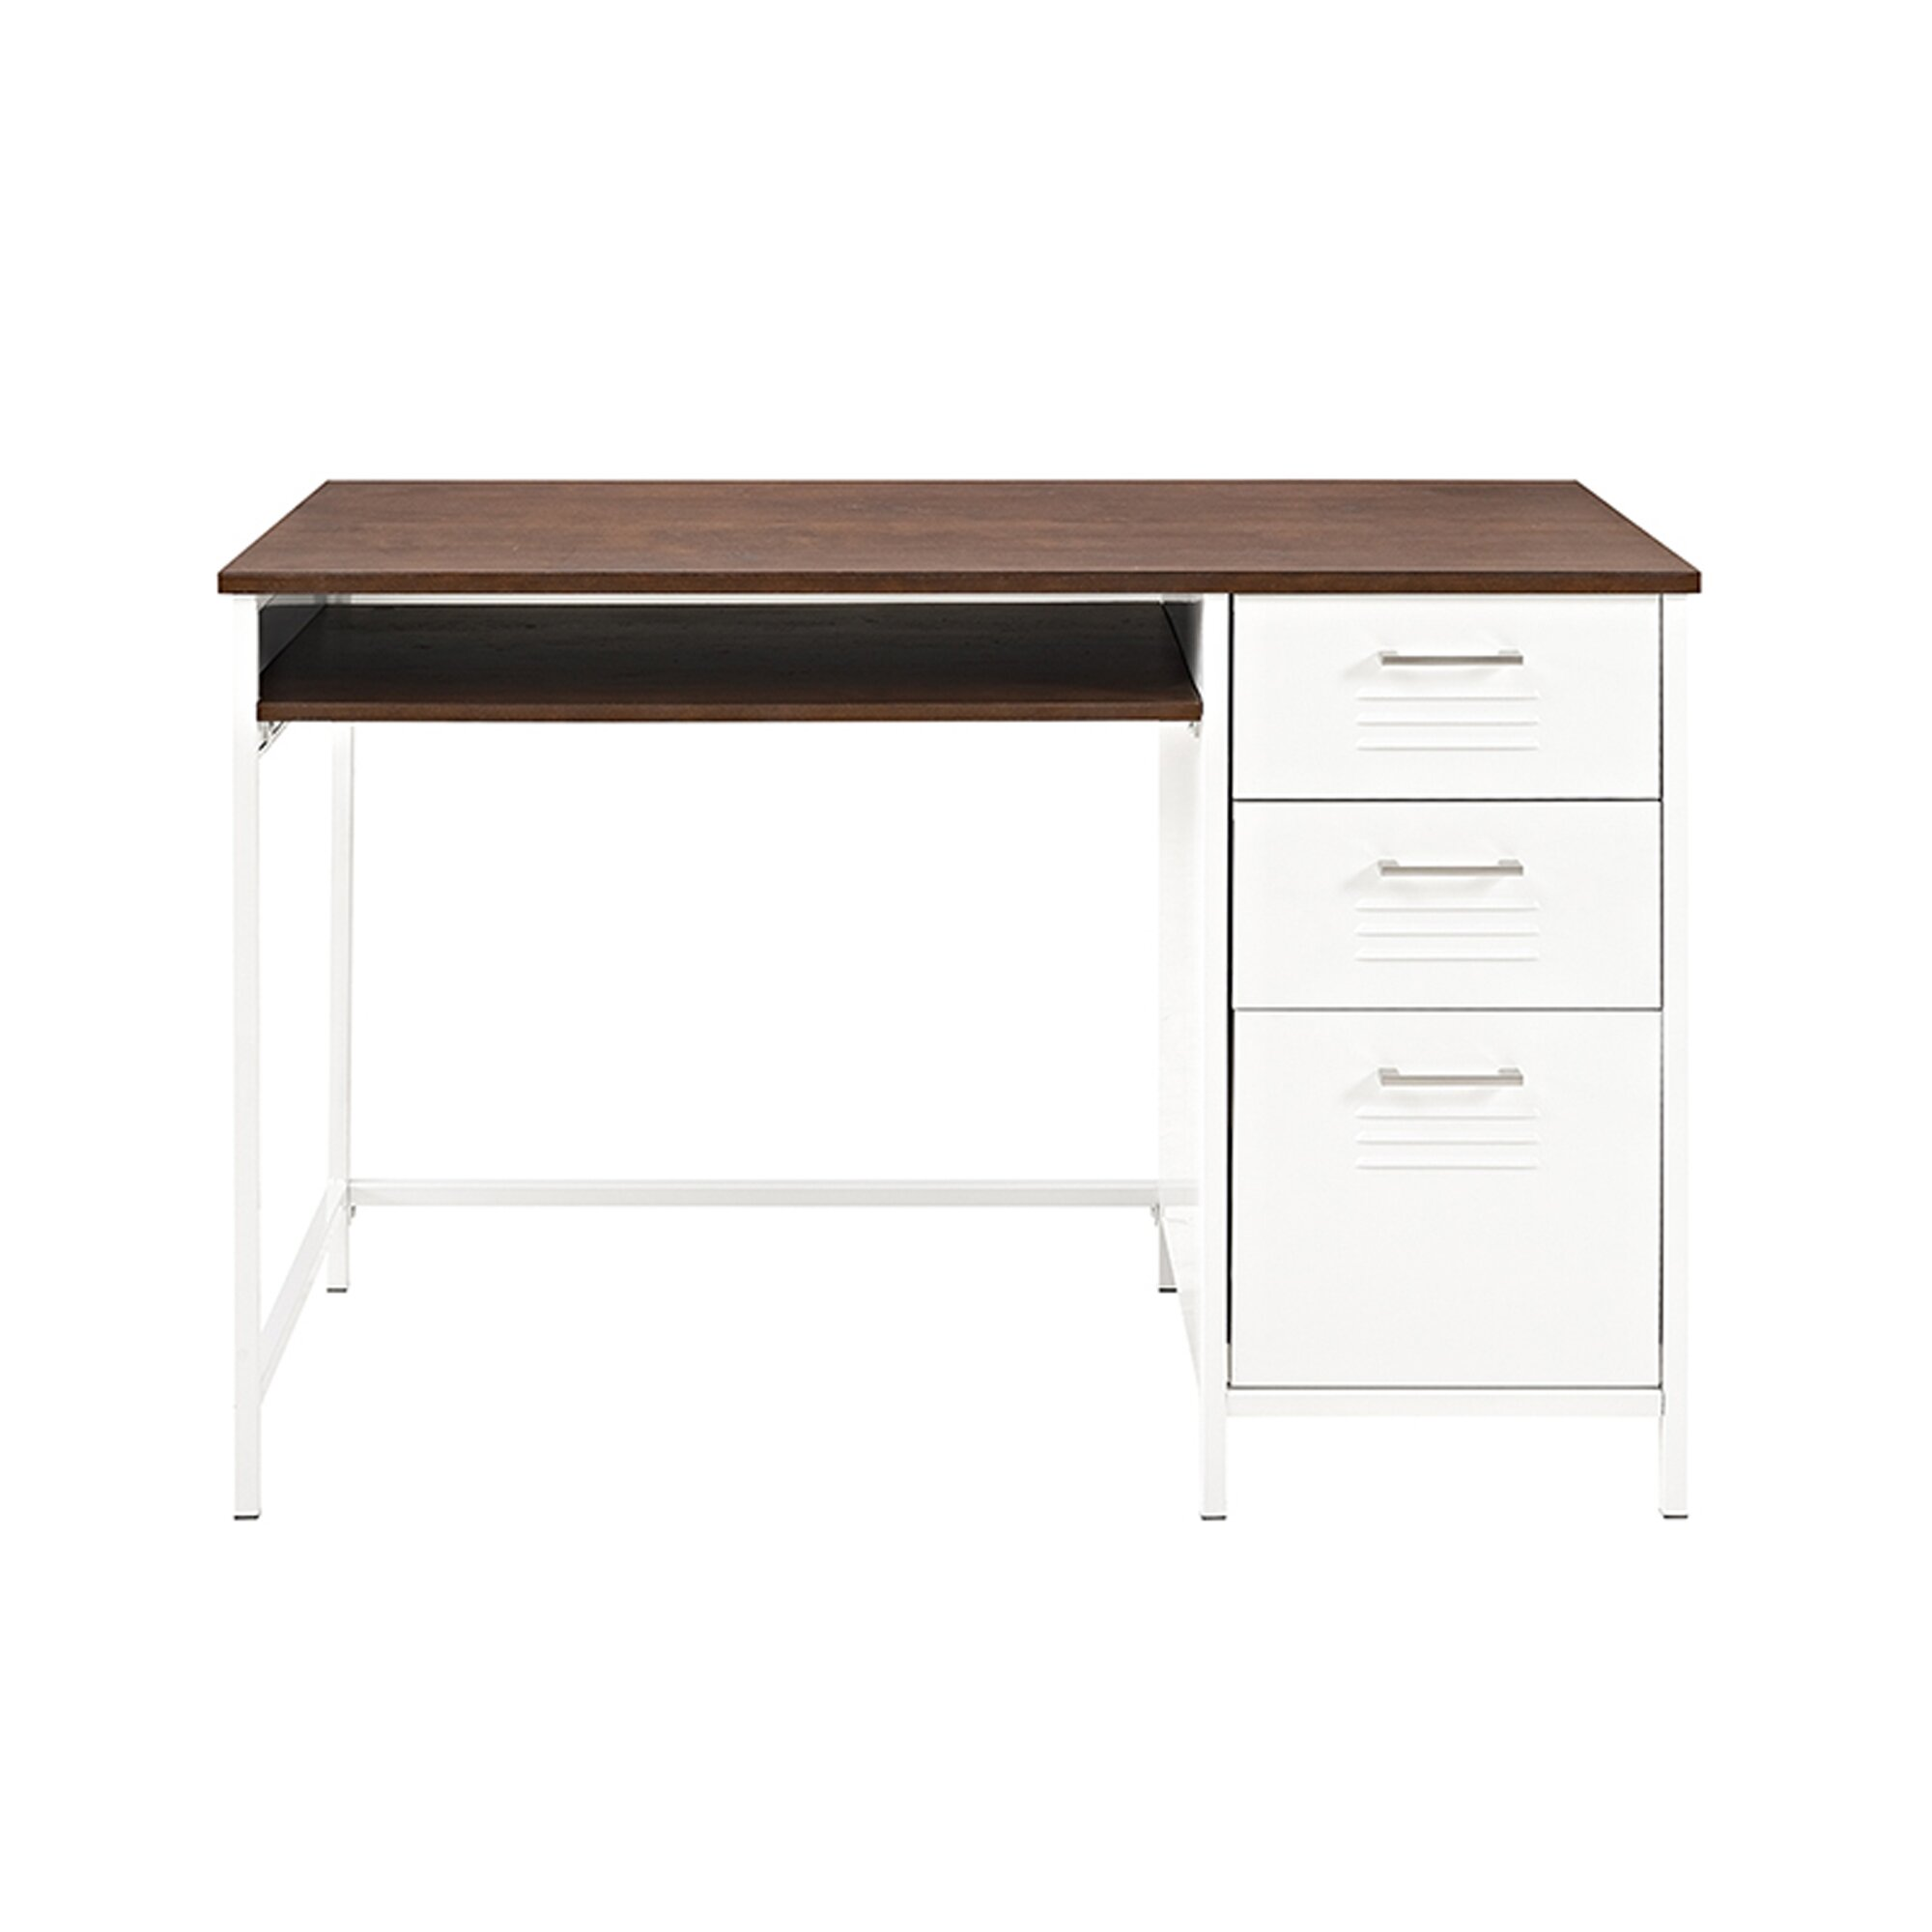 Latitude run marlee metal locker style computer desk with for Metal desk with wood top